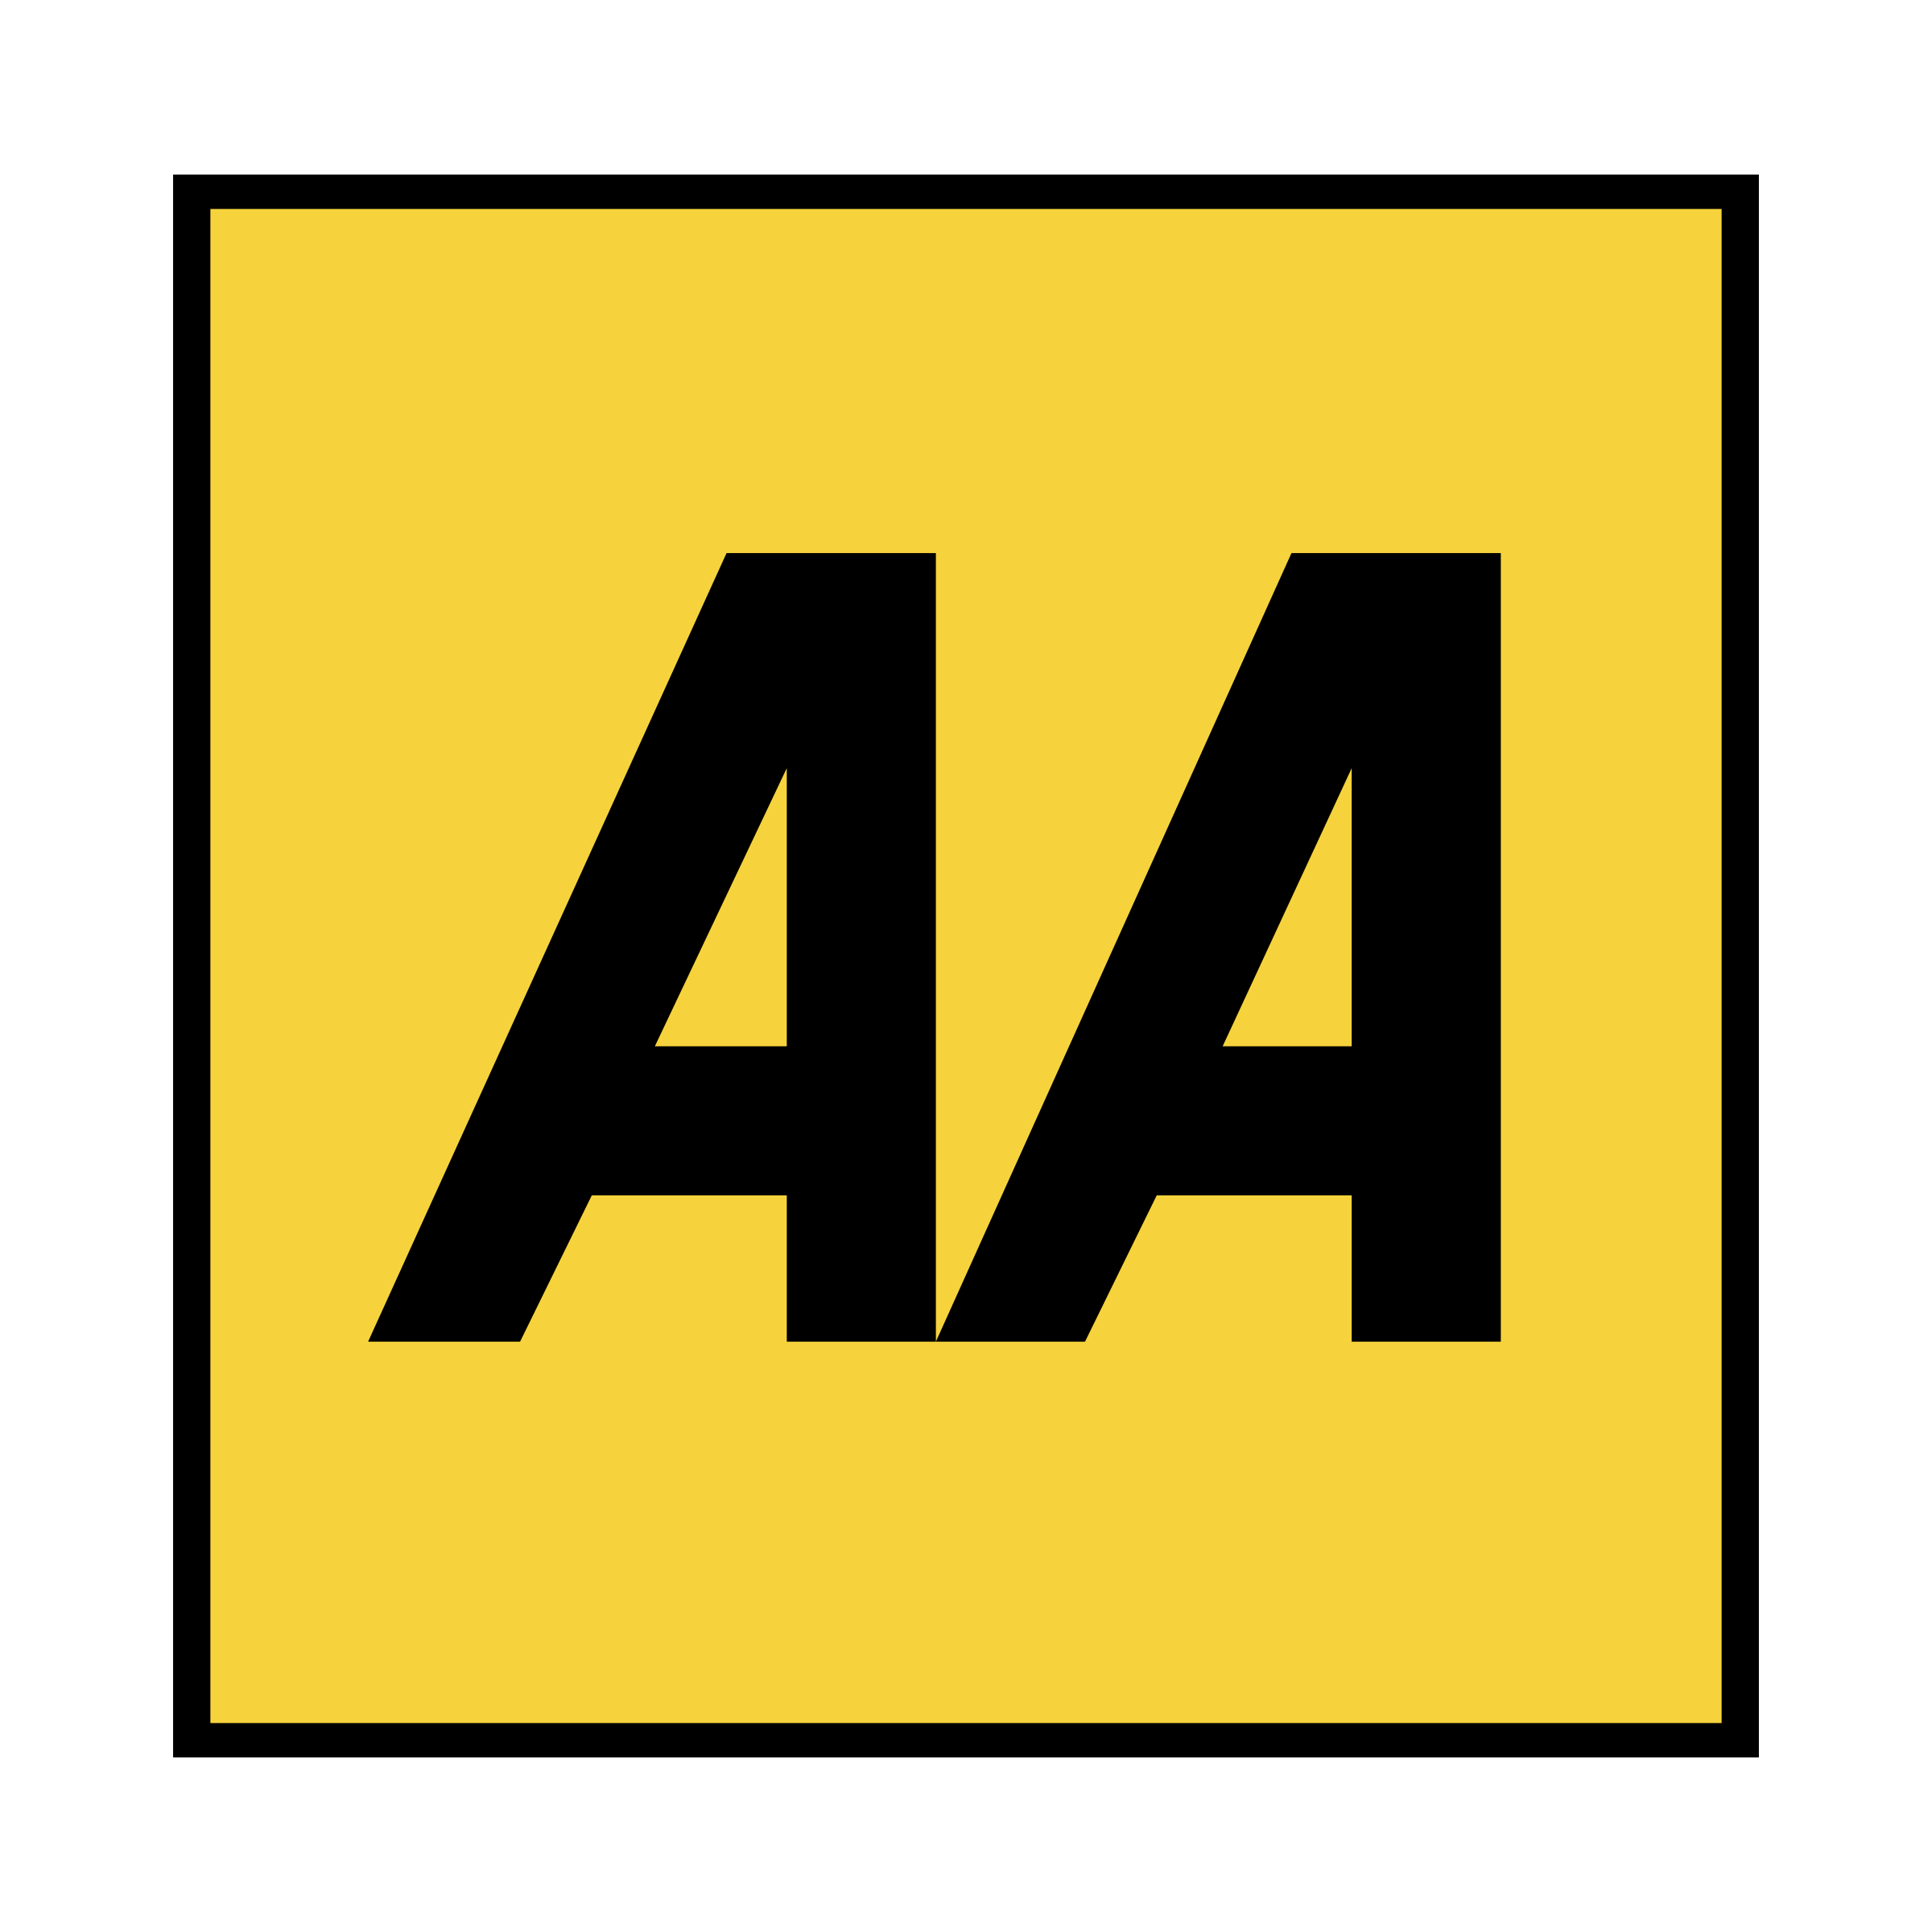 AA Logo PNG Transparent & SVG Vector.